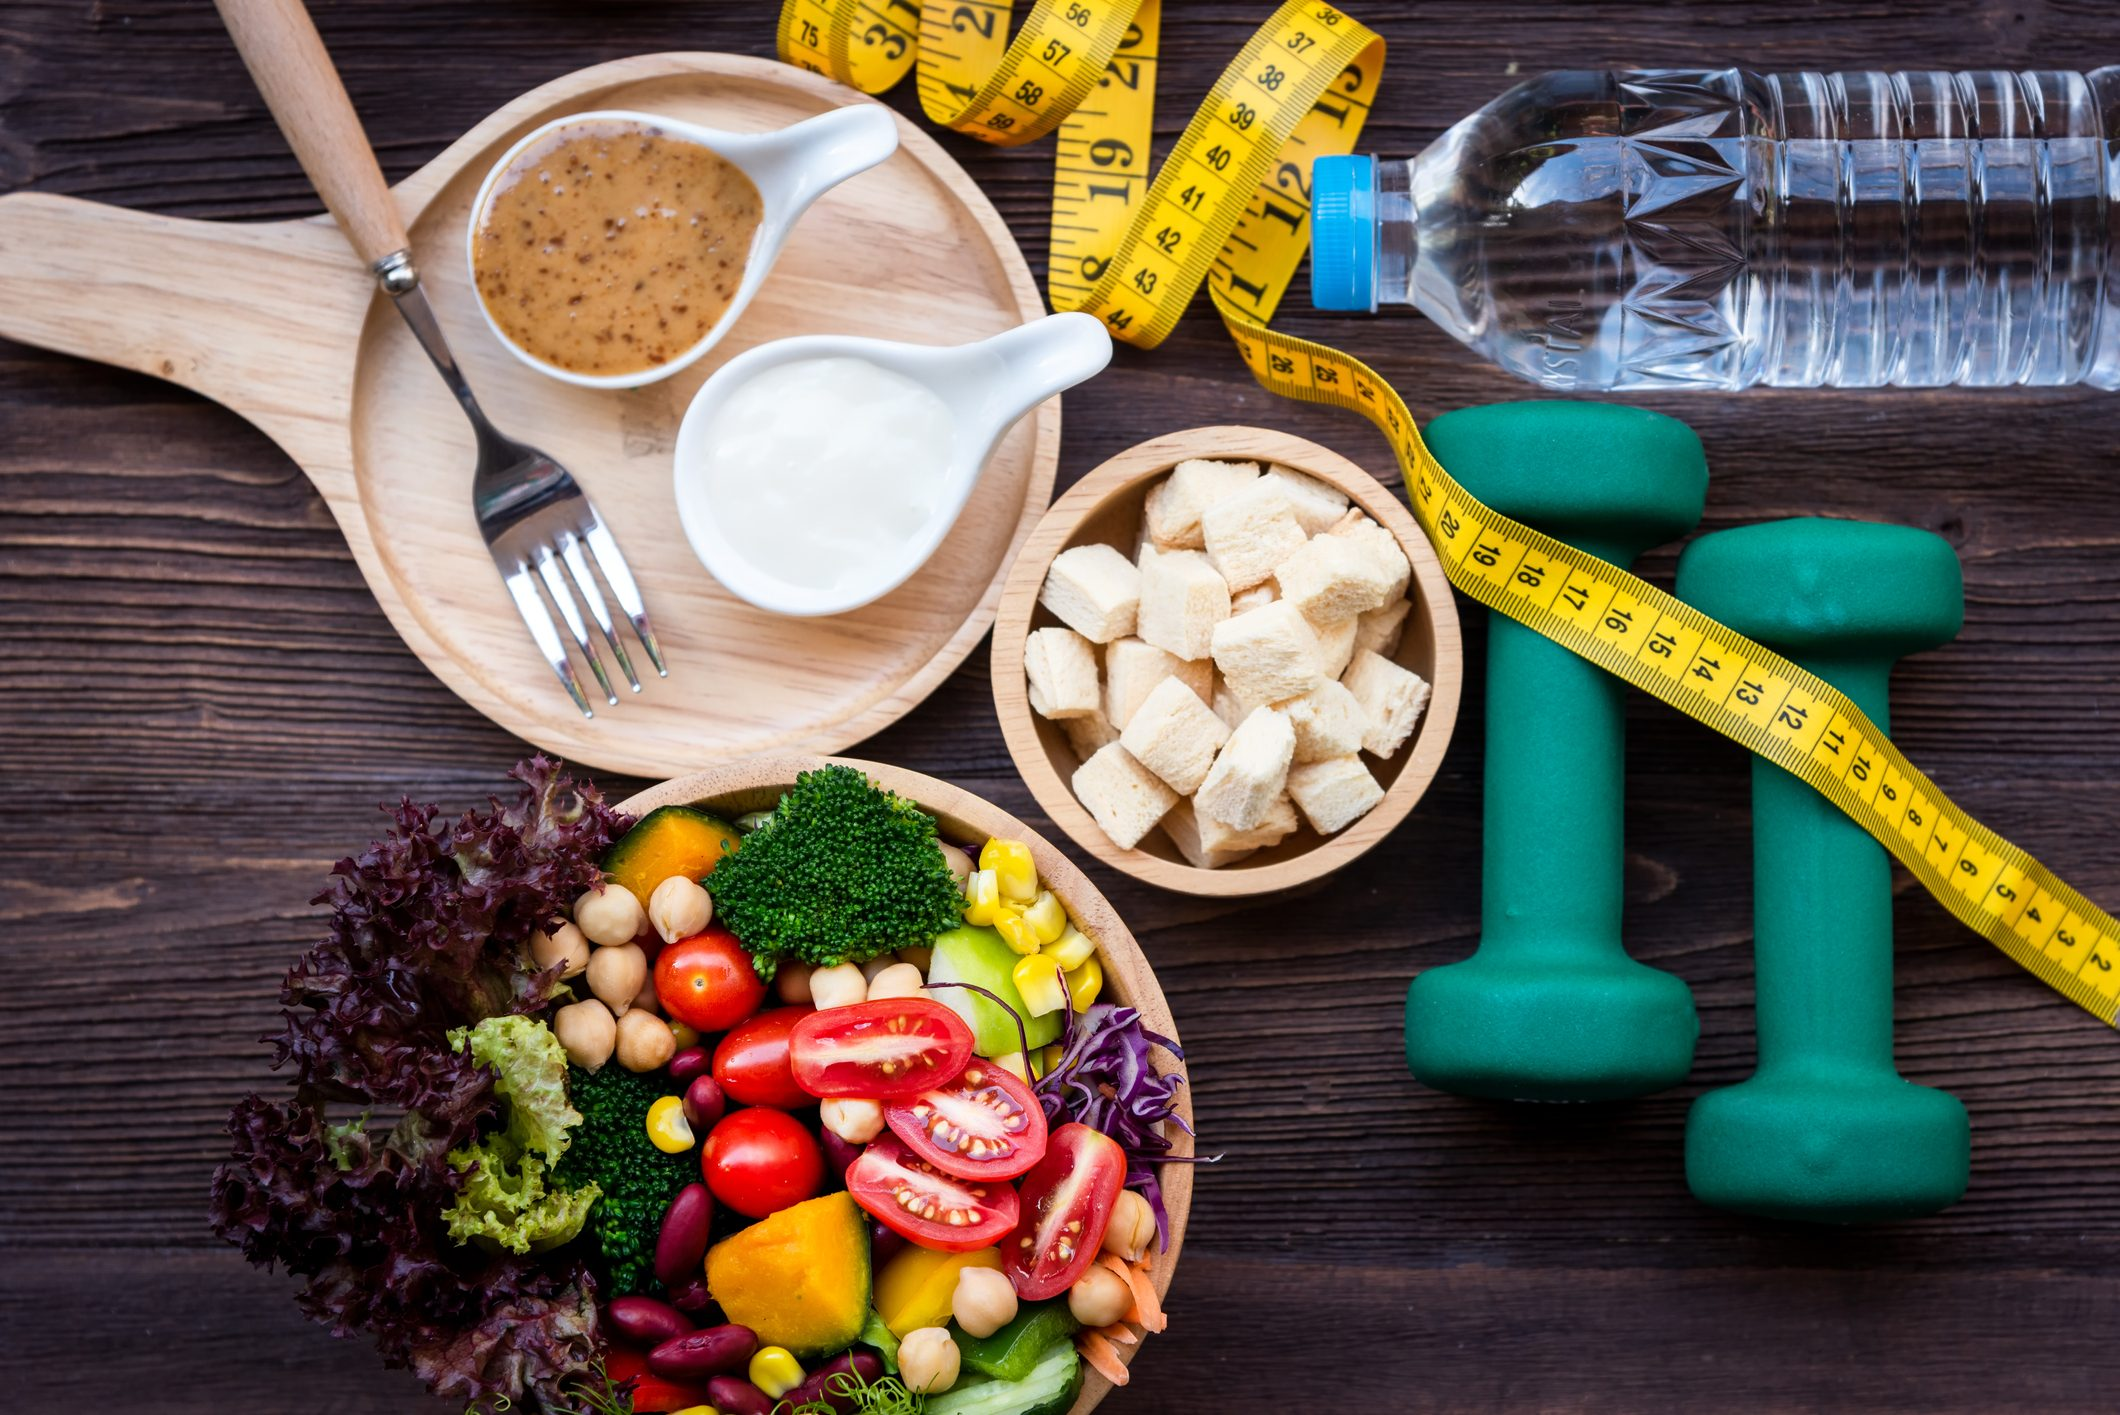 fresh vegetables, tofu, measuring tape, weights, and watter; weight loss concept